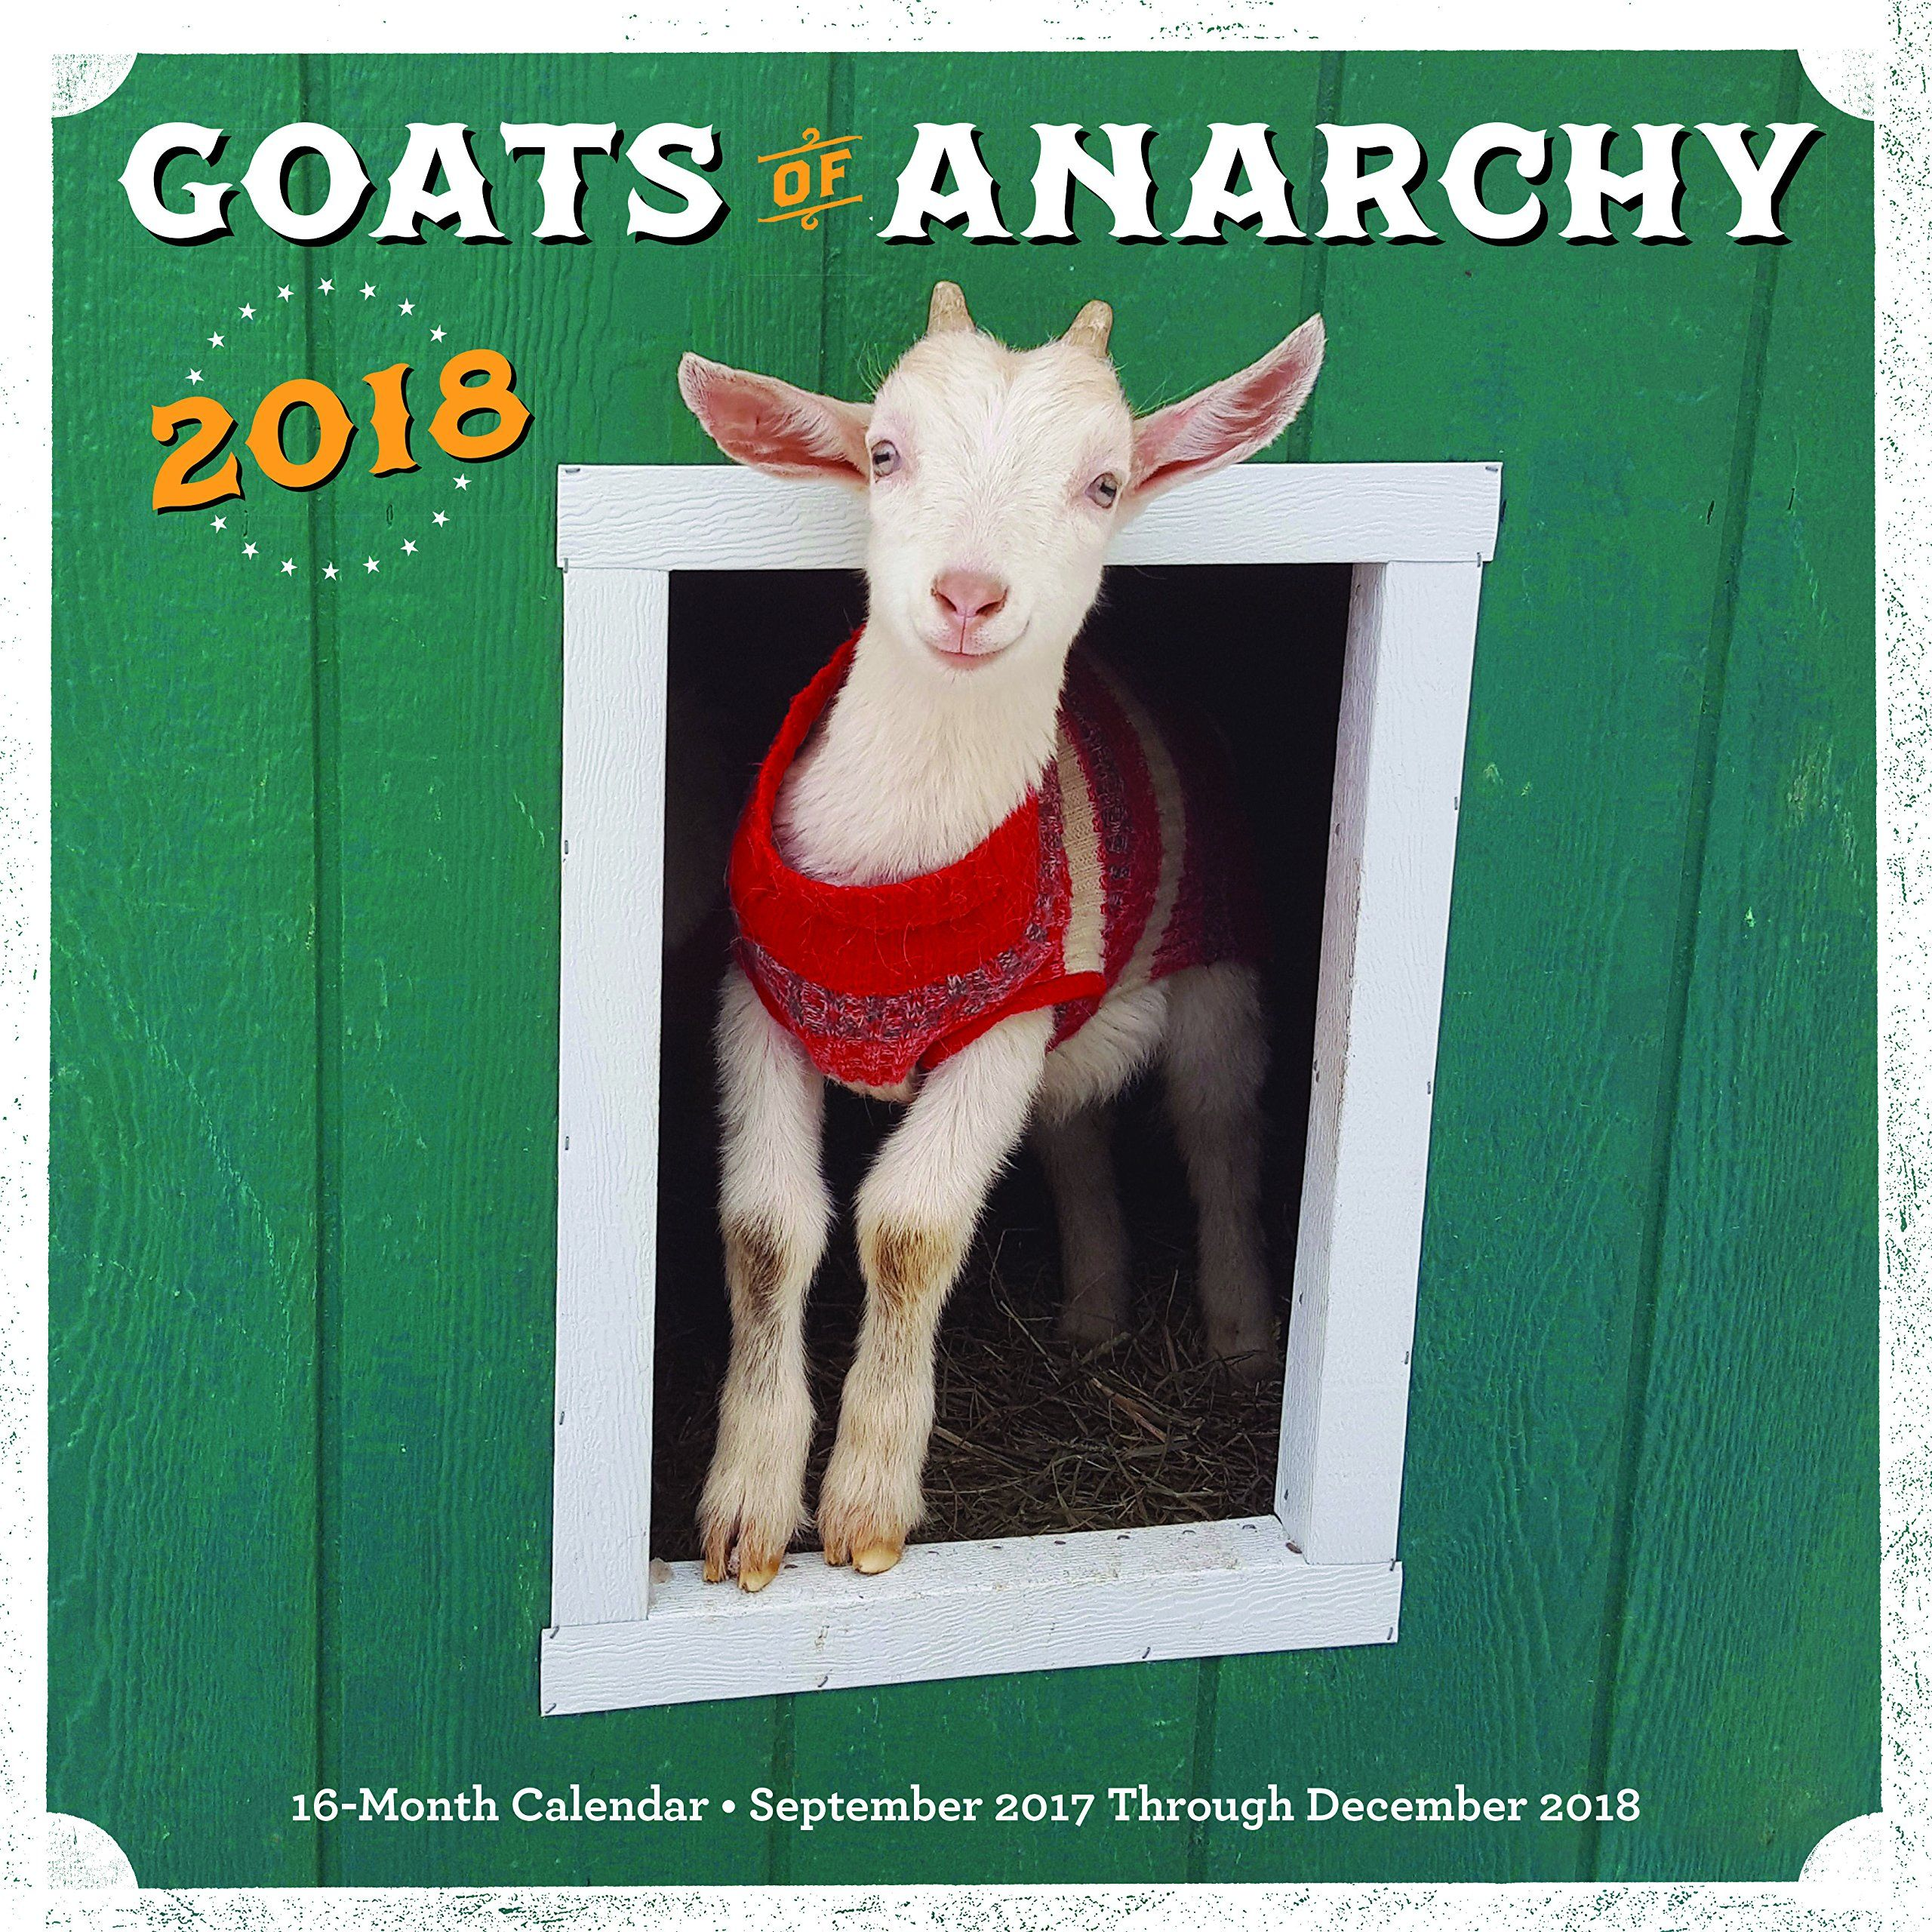 Goats of Anarchy Calendar The revolution started in the